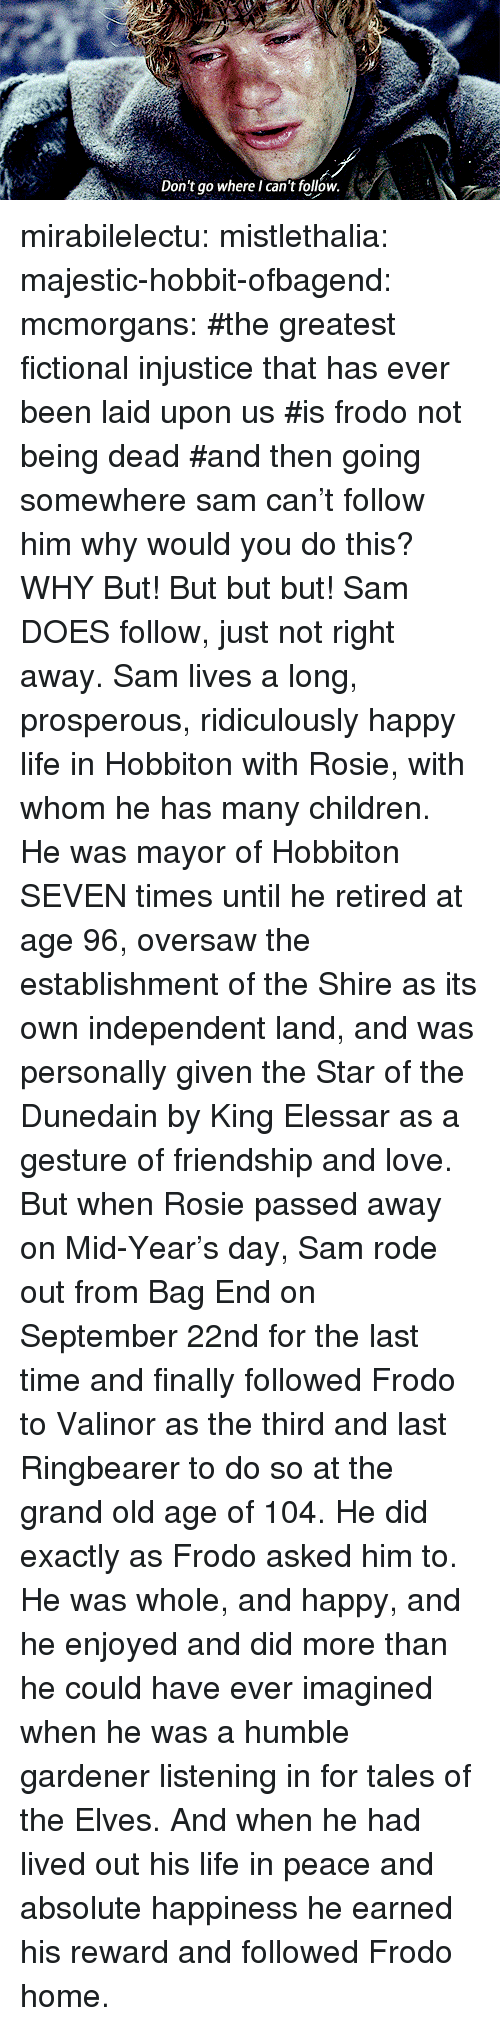 bag end: Don't go where I can't follow mirabilelectu:  mistlethalia:   majestic-hobbit-ofbagend:   mcmorgans:   #the greatest fictional injustice that has ever been laid upon us#is frodo not being dead#and then going somewhere sam can't follow him   why would you do this?   WHY   But! But but but! Sam DOES follow, just not right away. Sam lives a long, prosperous, ridiculously happy life in Hobbiton with Rosie, with whom he has many children. He was mayor of Hobbiton SEVEN times until he retired at age 96, oversaw the establishment of the Shire as its own independent land, and was personally given the Star of the Dunedain by King Elessar as a gesture of friendship and love. But when Rosie passed away on Mid-Year's day, Sam rode out from Bag End on September 22nd for the last time and finally followed Frodo to Valinor as the third and last Ringbearer to do so at the grand old age of 104. He did exactly as Frodo asked him to. He was whole, and happy, and he enjoyed and did more than he could have ever imagined when he was a humble gardener listening in for tales of the Elves. And when he had lived out his life in peace and absolute happiness he earned his reward and followed Frodo home.